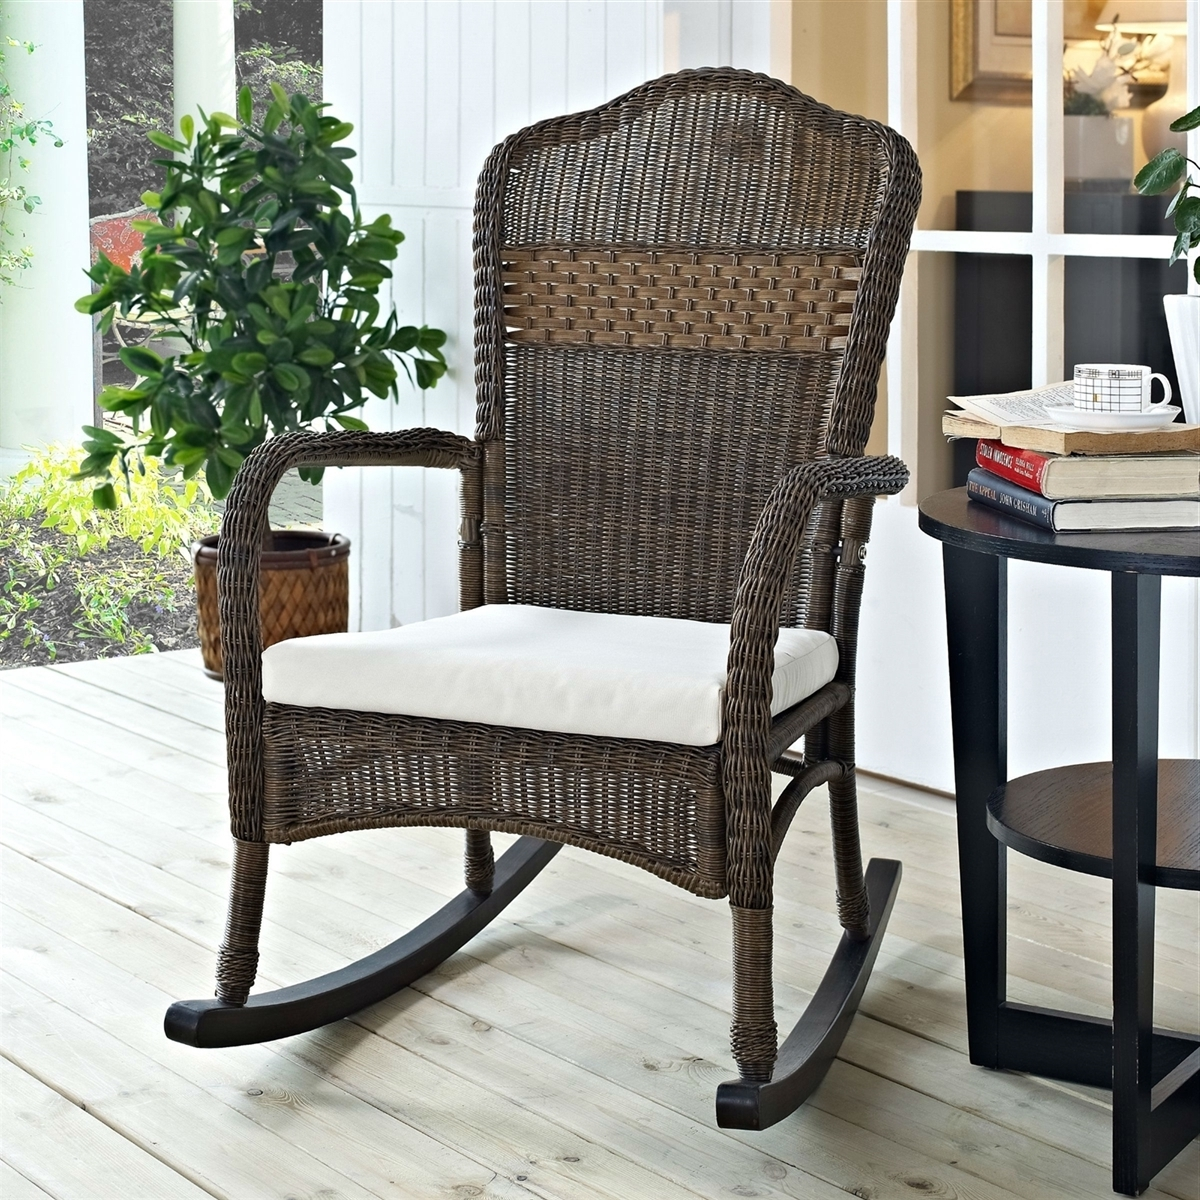 Widely Used Wicker Patio Furniture Rocking Chair Mocha With Beige Cushion Within Patio Rocking Chairs With Cushions (View 11 of 15)